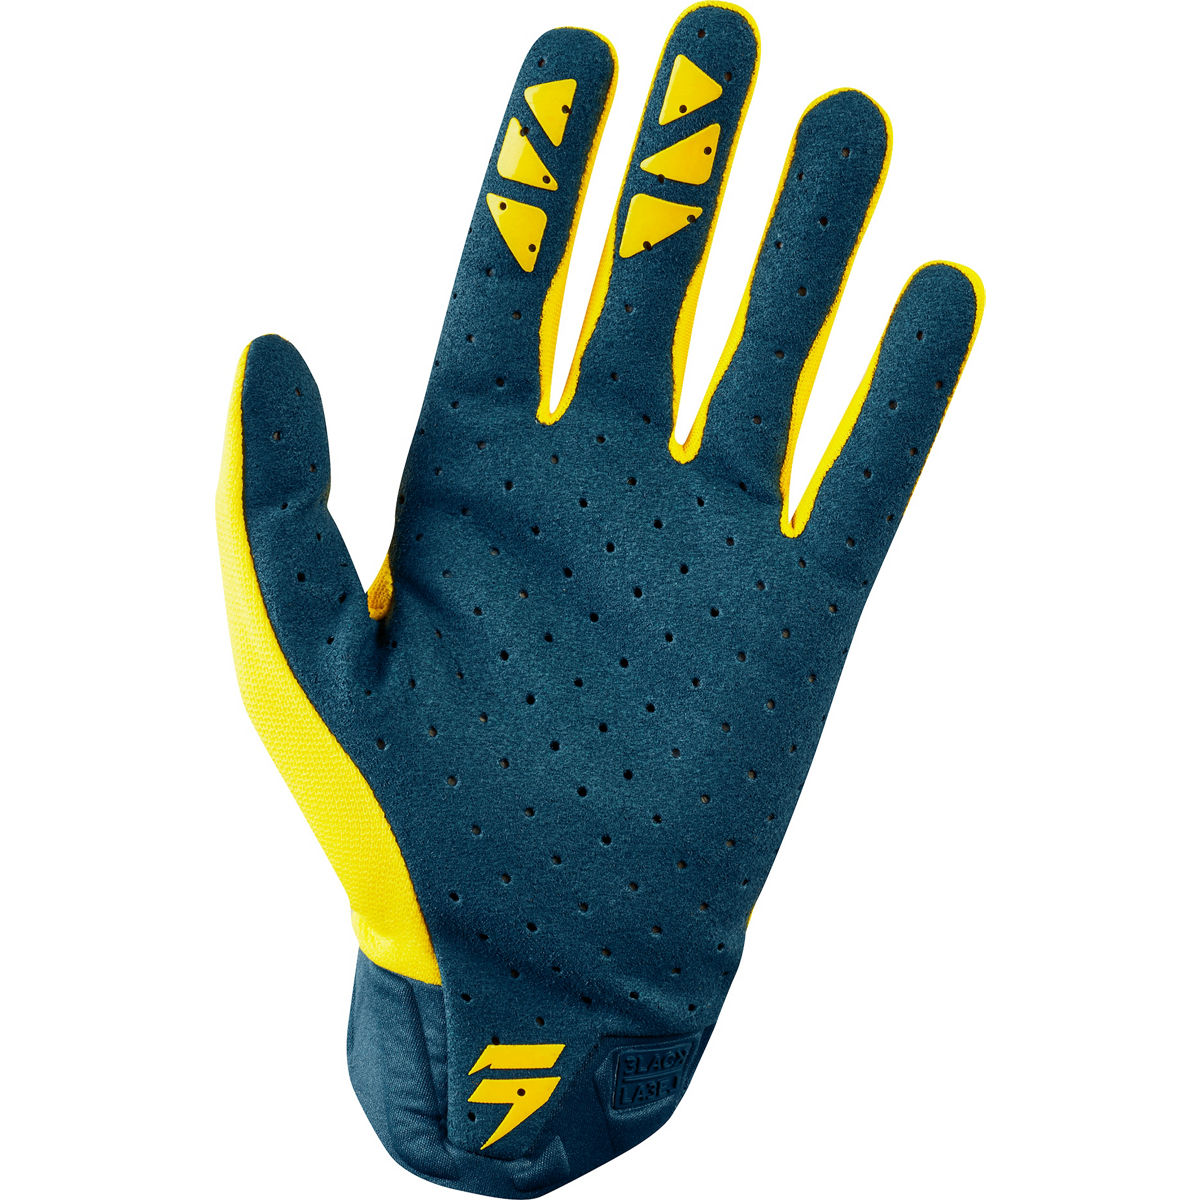 21885-079 2020 Shift MX Black Label Air Gloves Yellow Navy Motocross Enduro Handschoenen BMX Gants Handschuhe